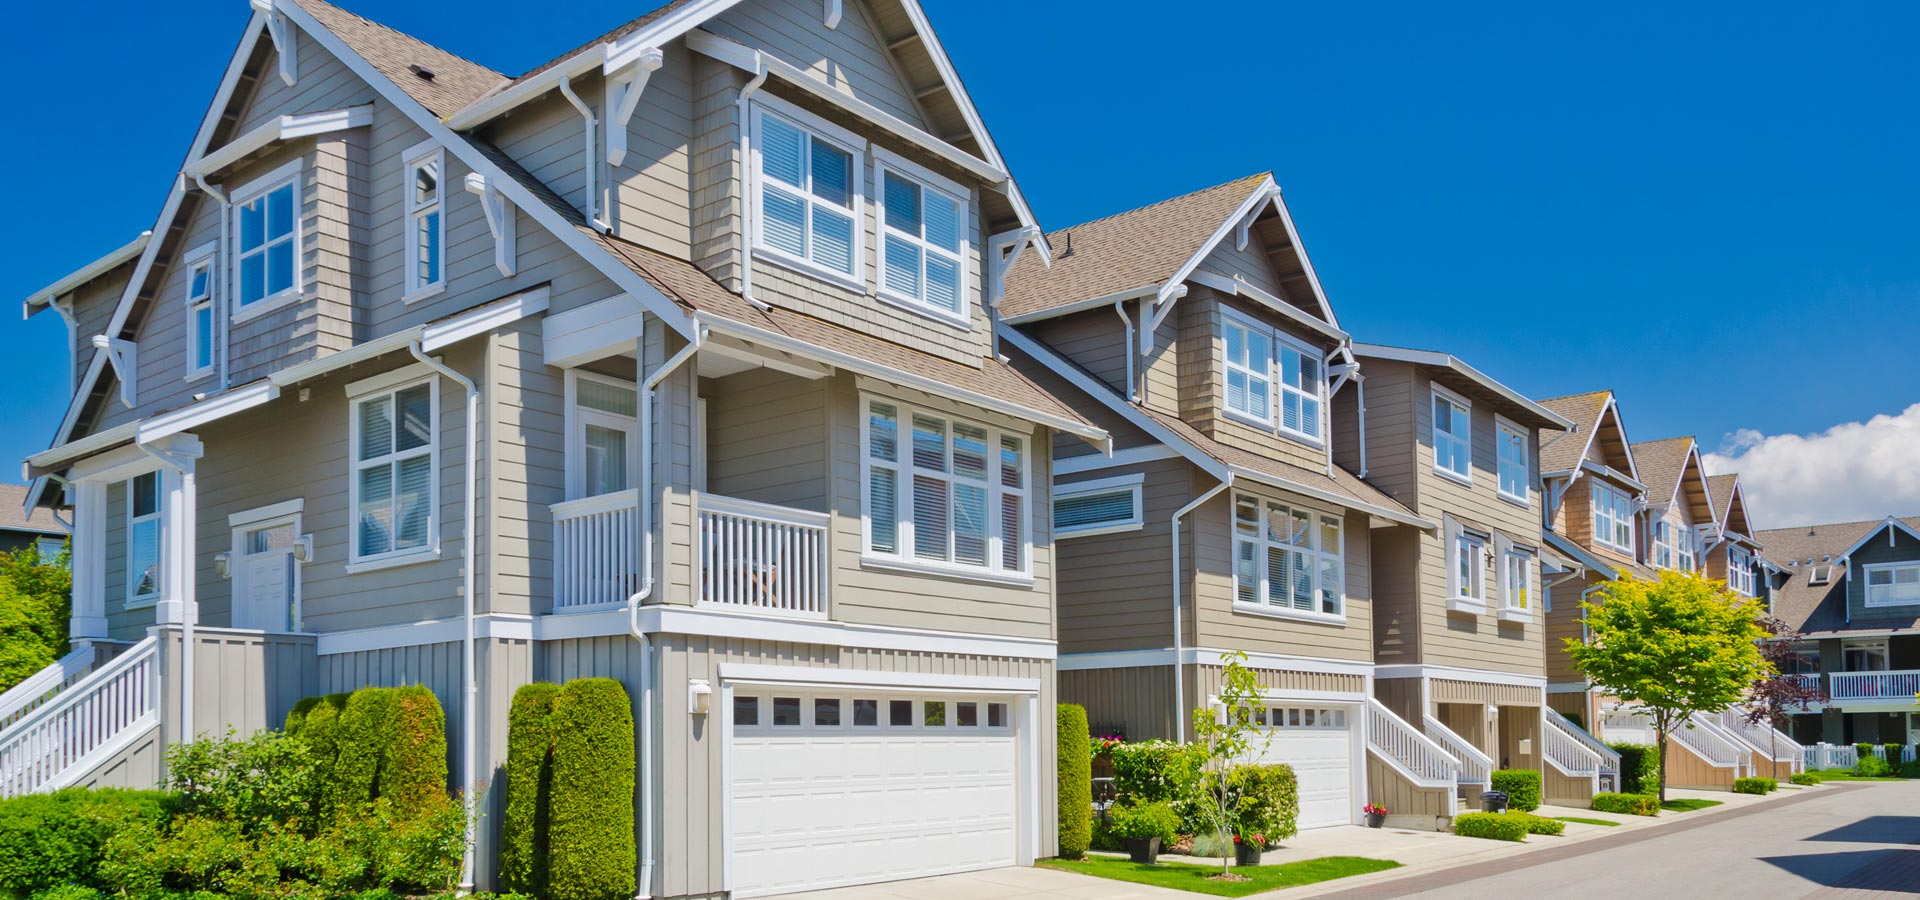 Townhouse Home Inspections